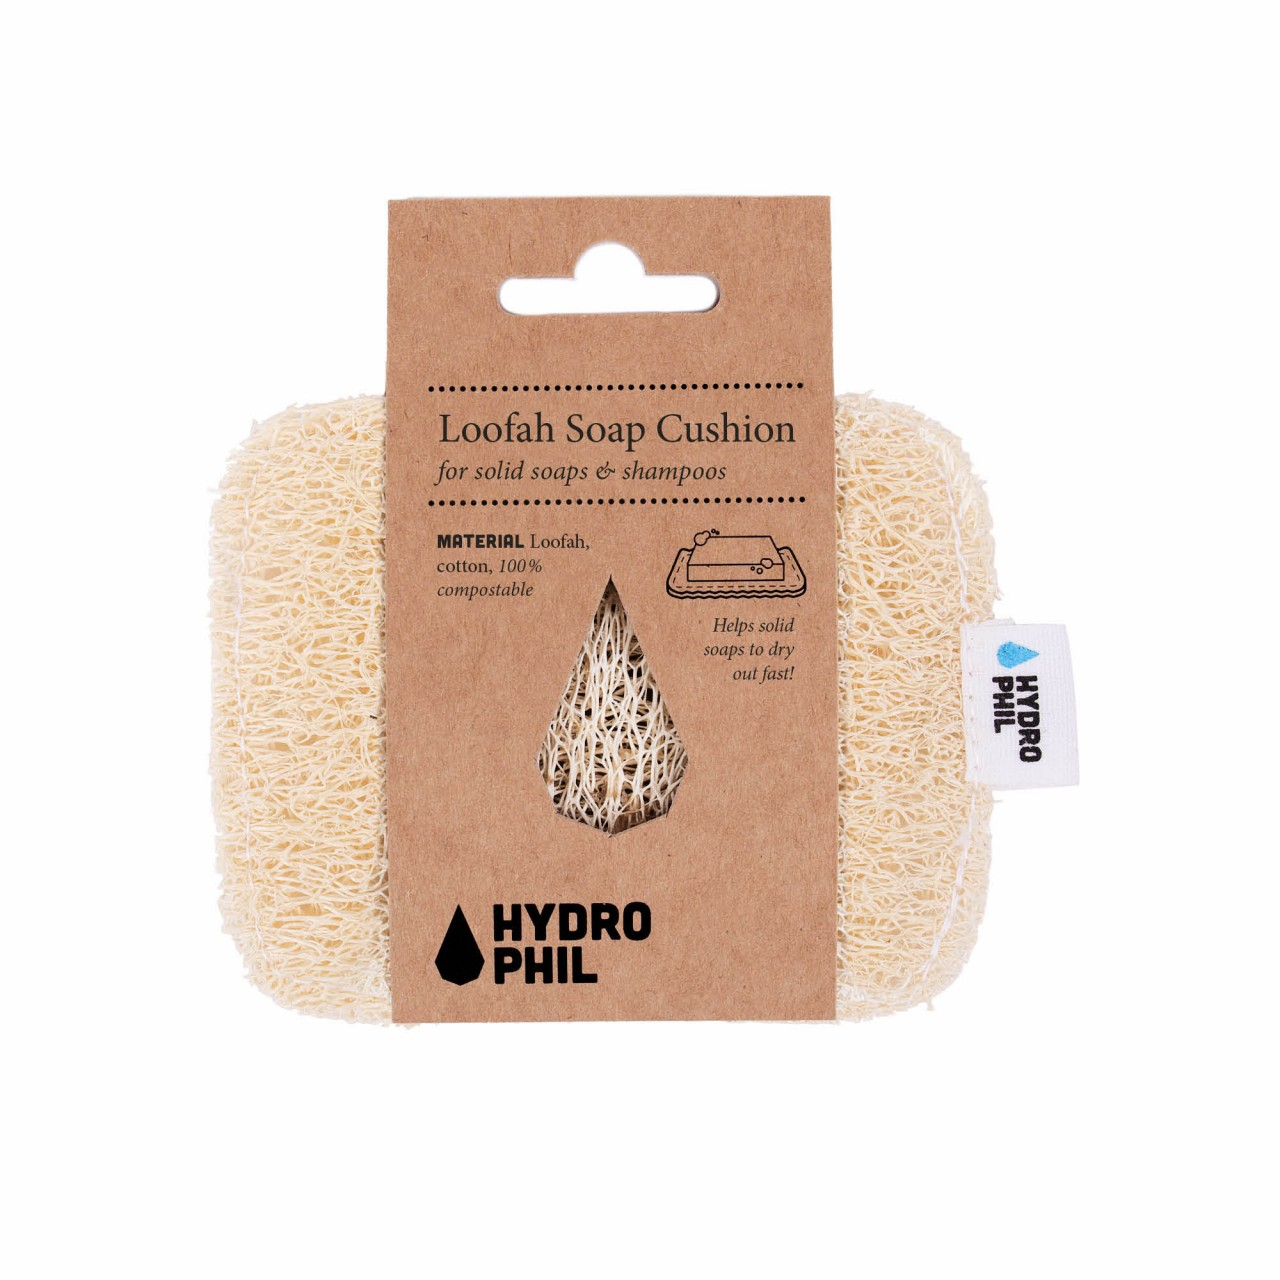 HYDROPHIL Loofah Soap Cushion 1